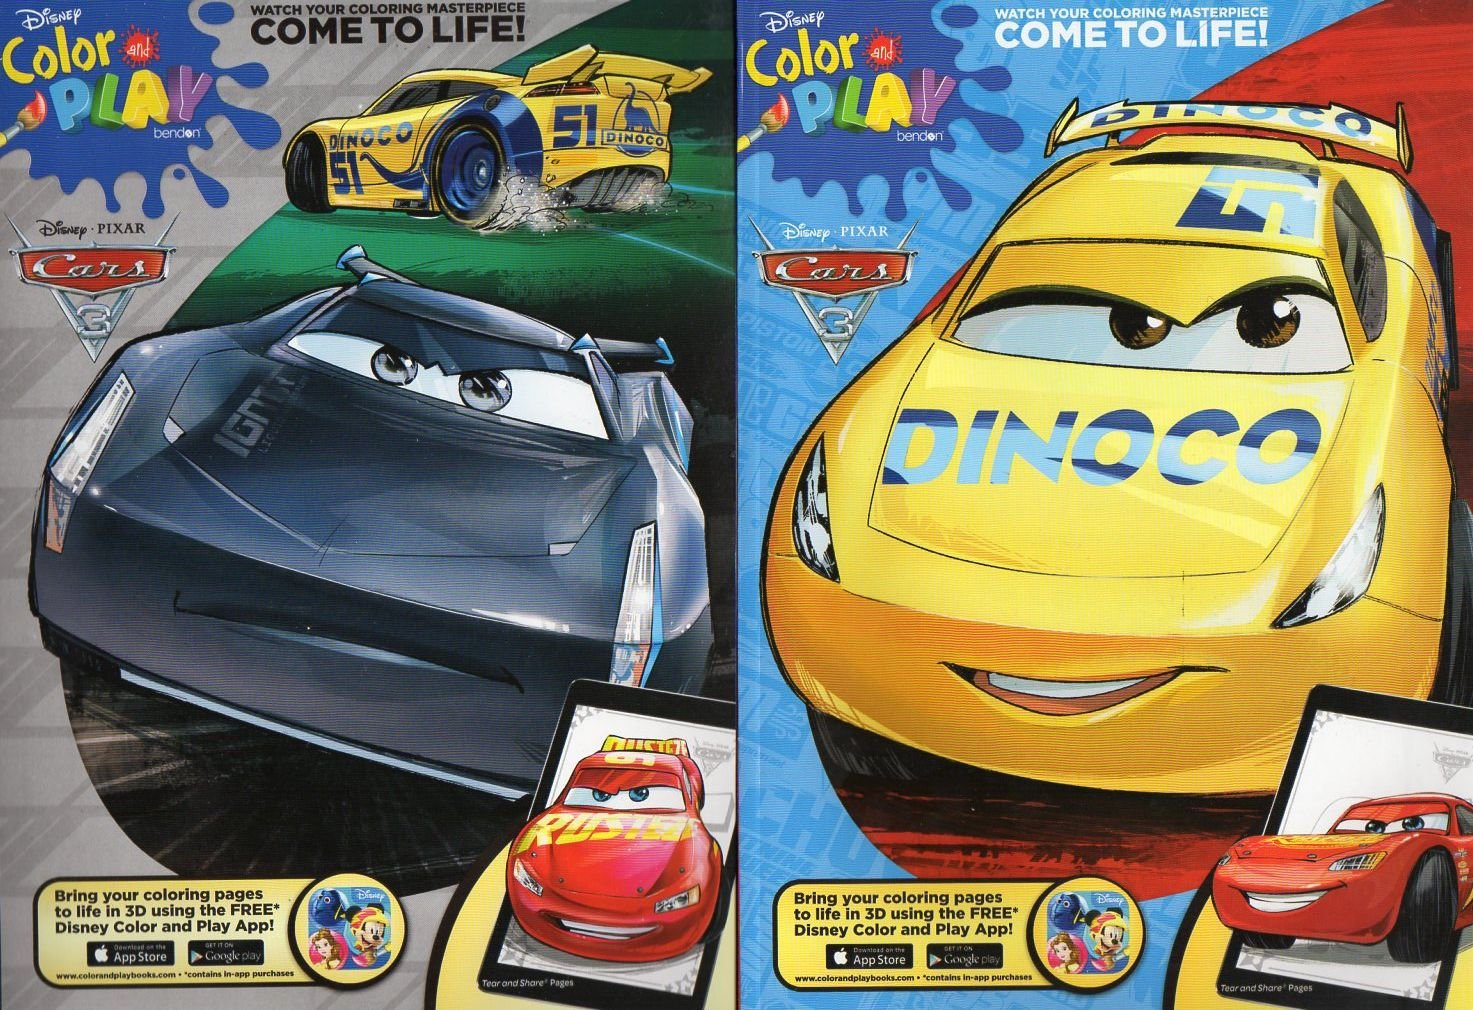 Pictures To Coloring Pages App : Amazon disney pixar cars color and play coloring and